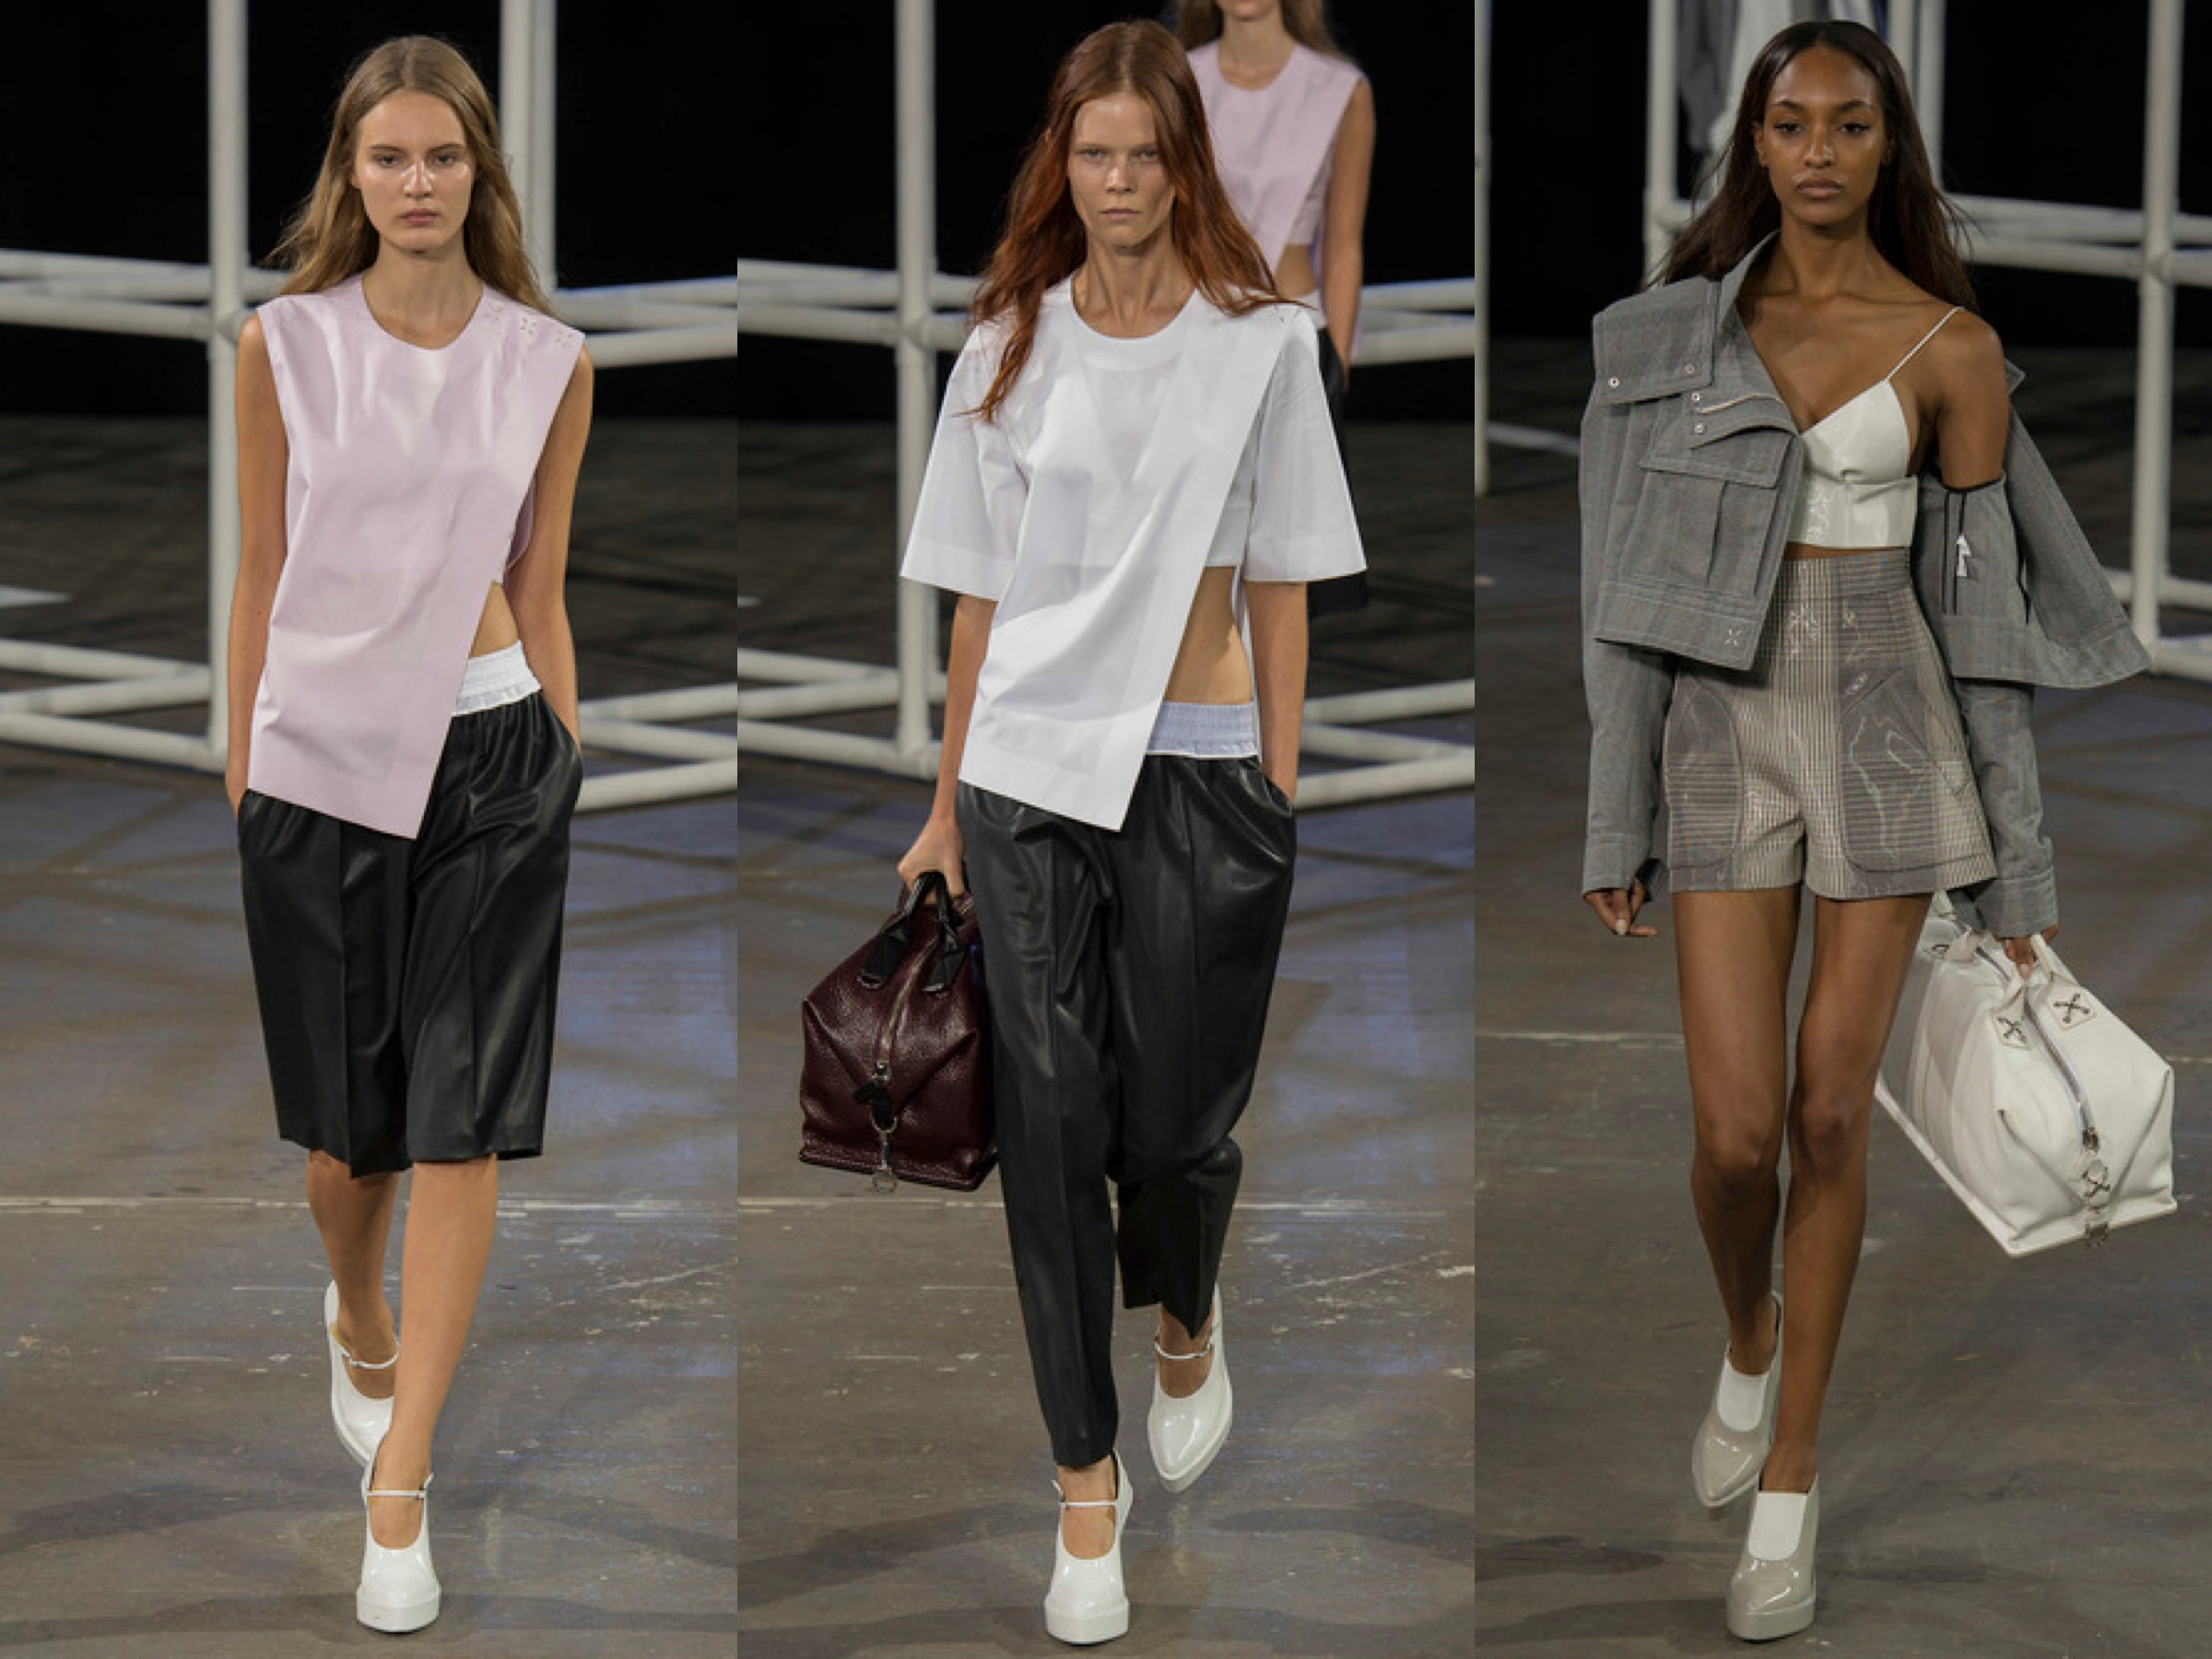 Alexander Wang spring 2014 collage 3